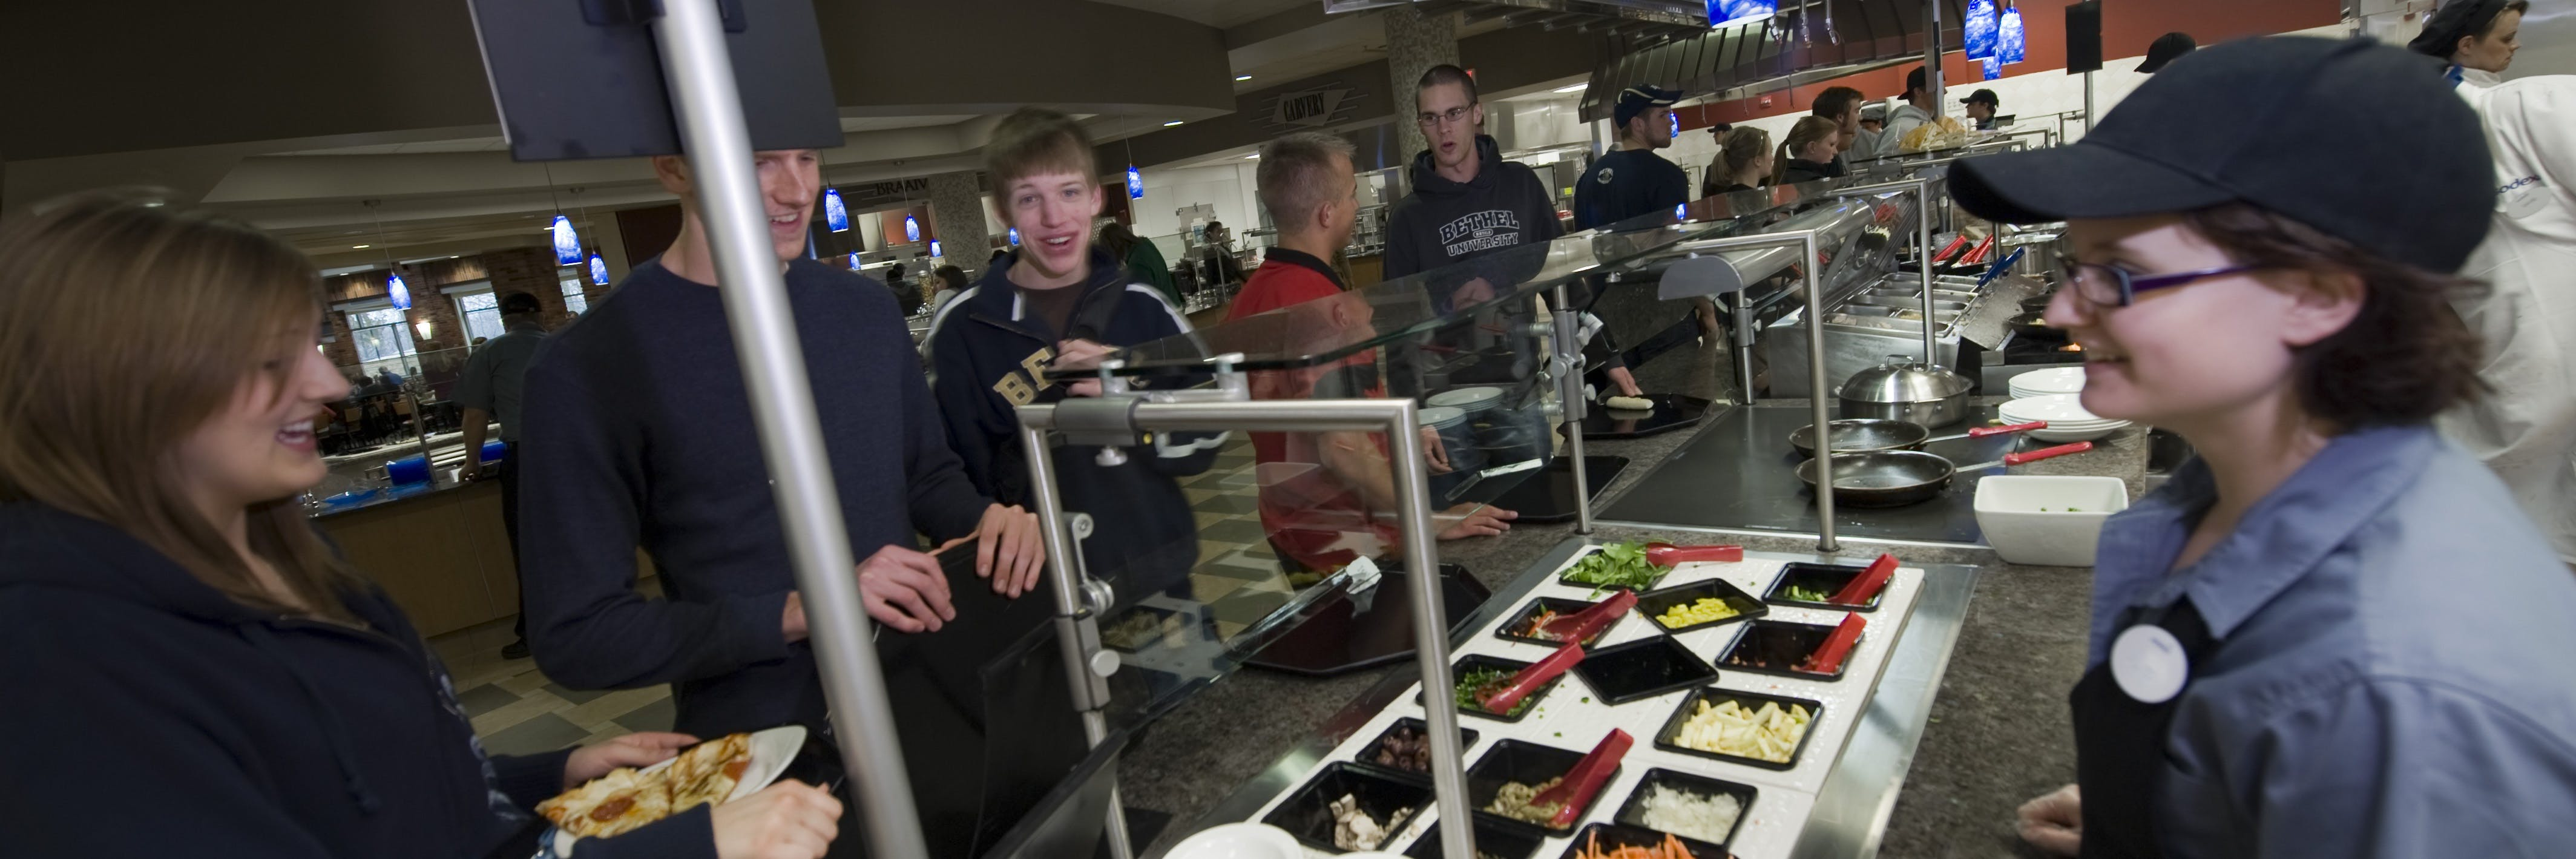 Students waiting in line for pasta in the dining center.